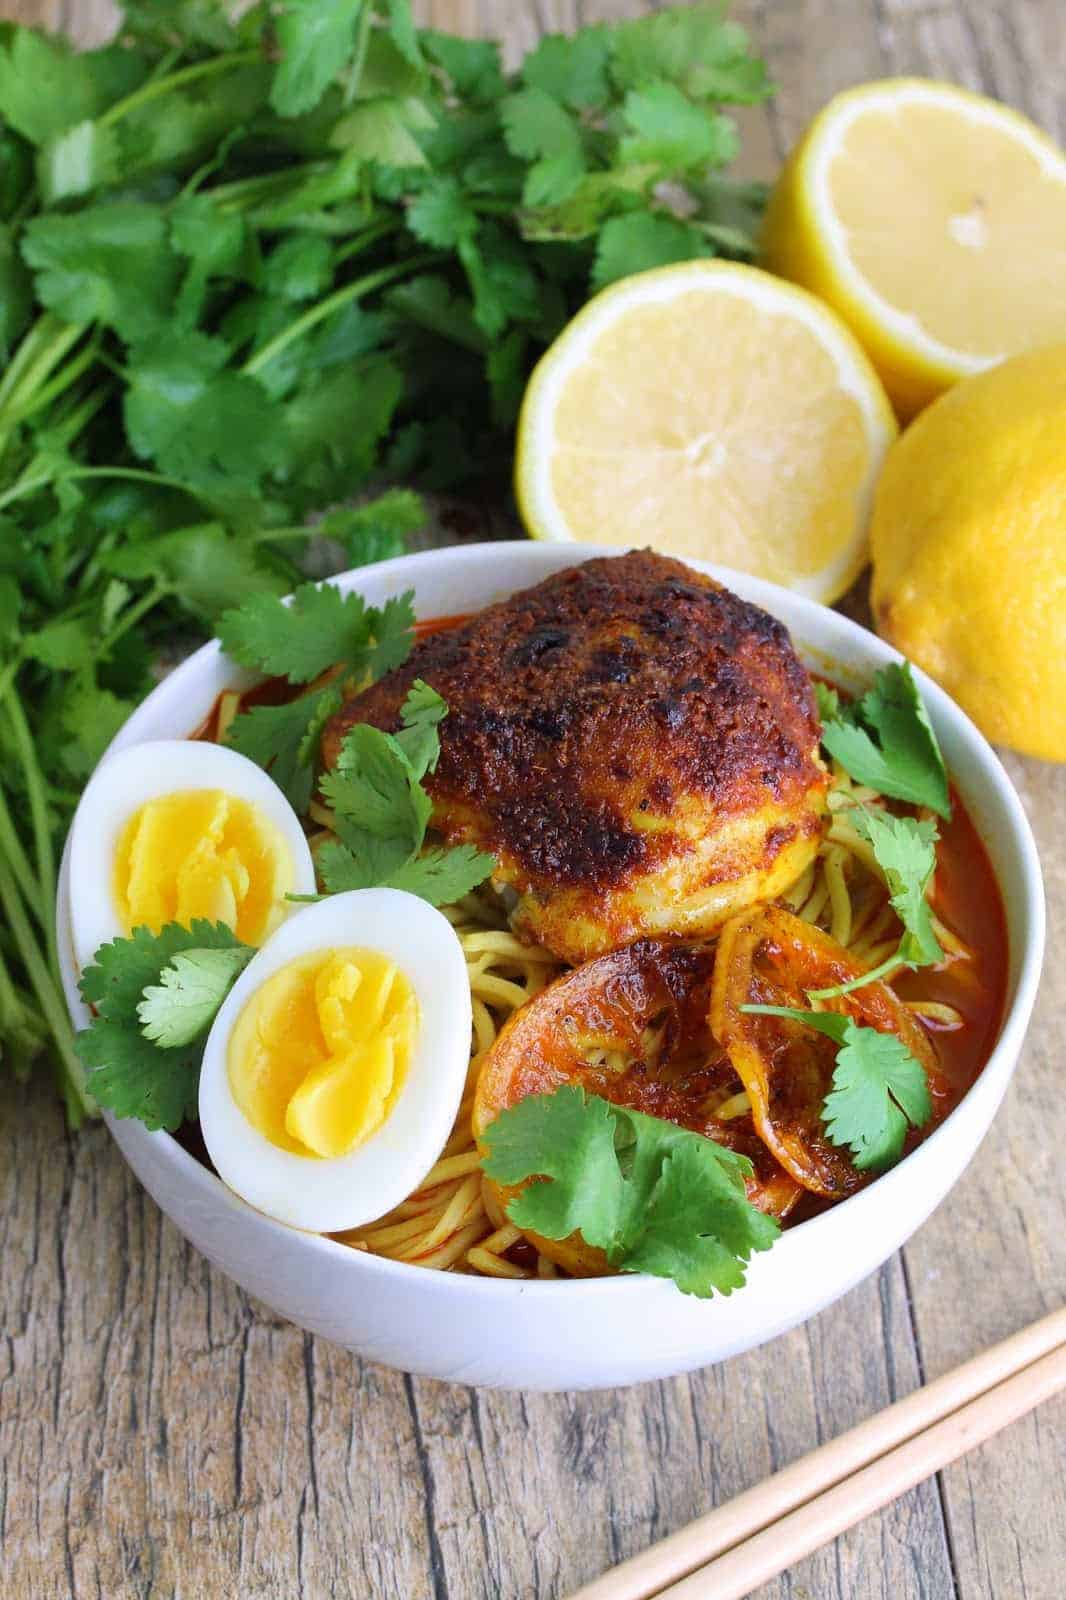 Flavorful ramen topped with a Moroccan chicken thigh, roasted lemon slices, a sliced boiled egg and garnished with fresh cilantro